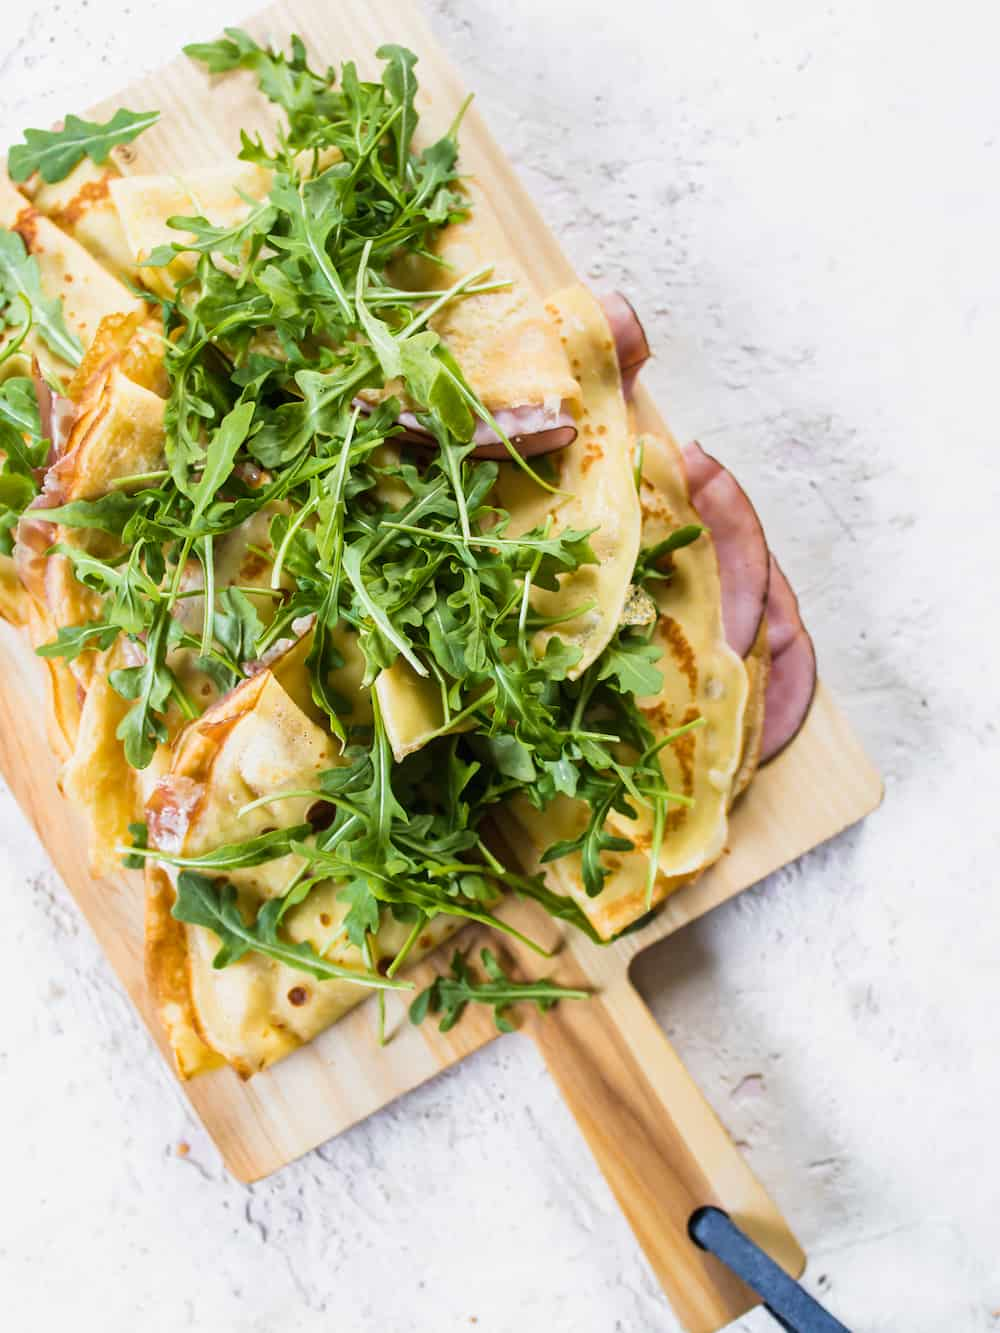 Cooked crepes with ham and topped with fresh arugula.